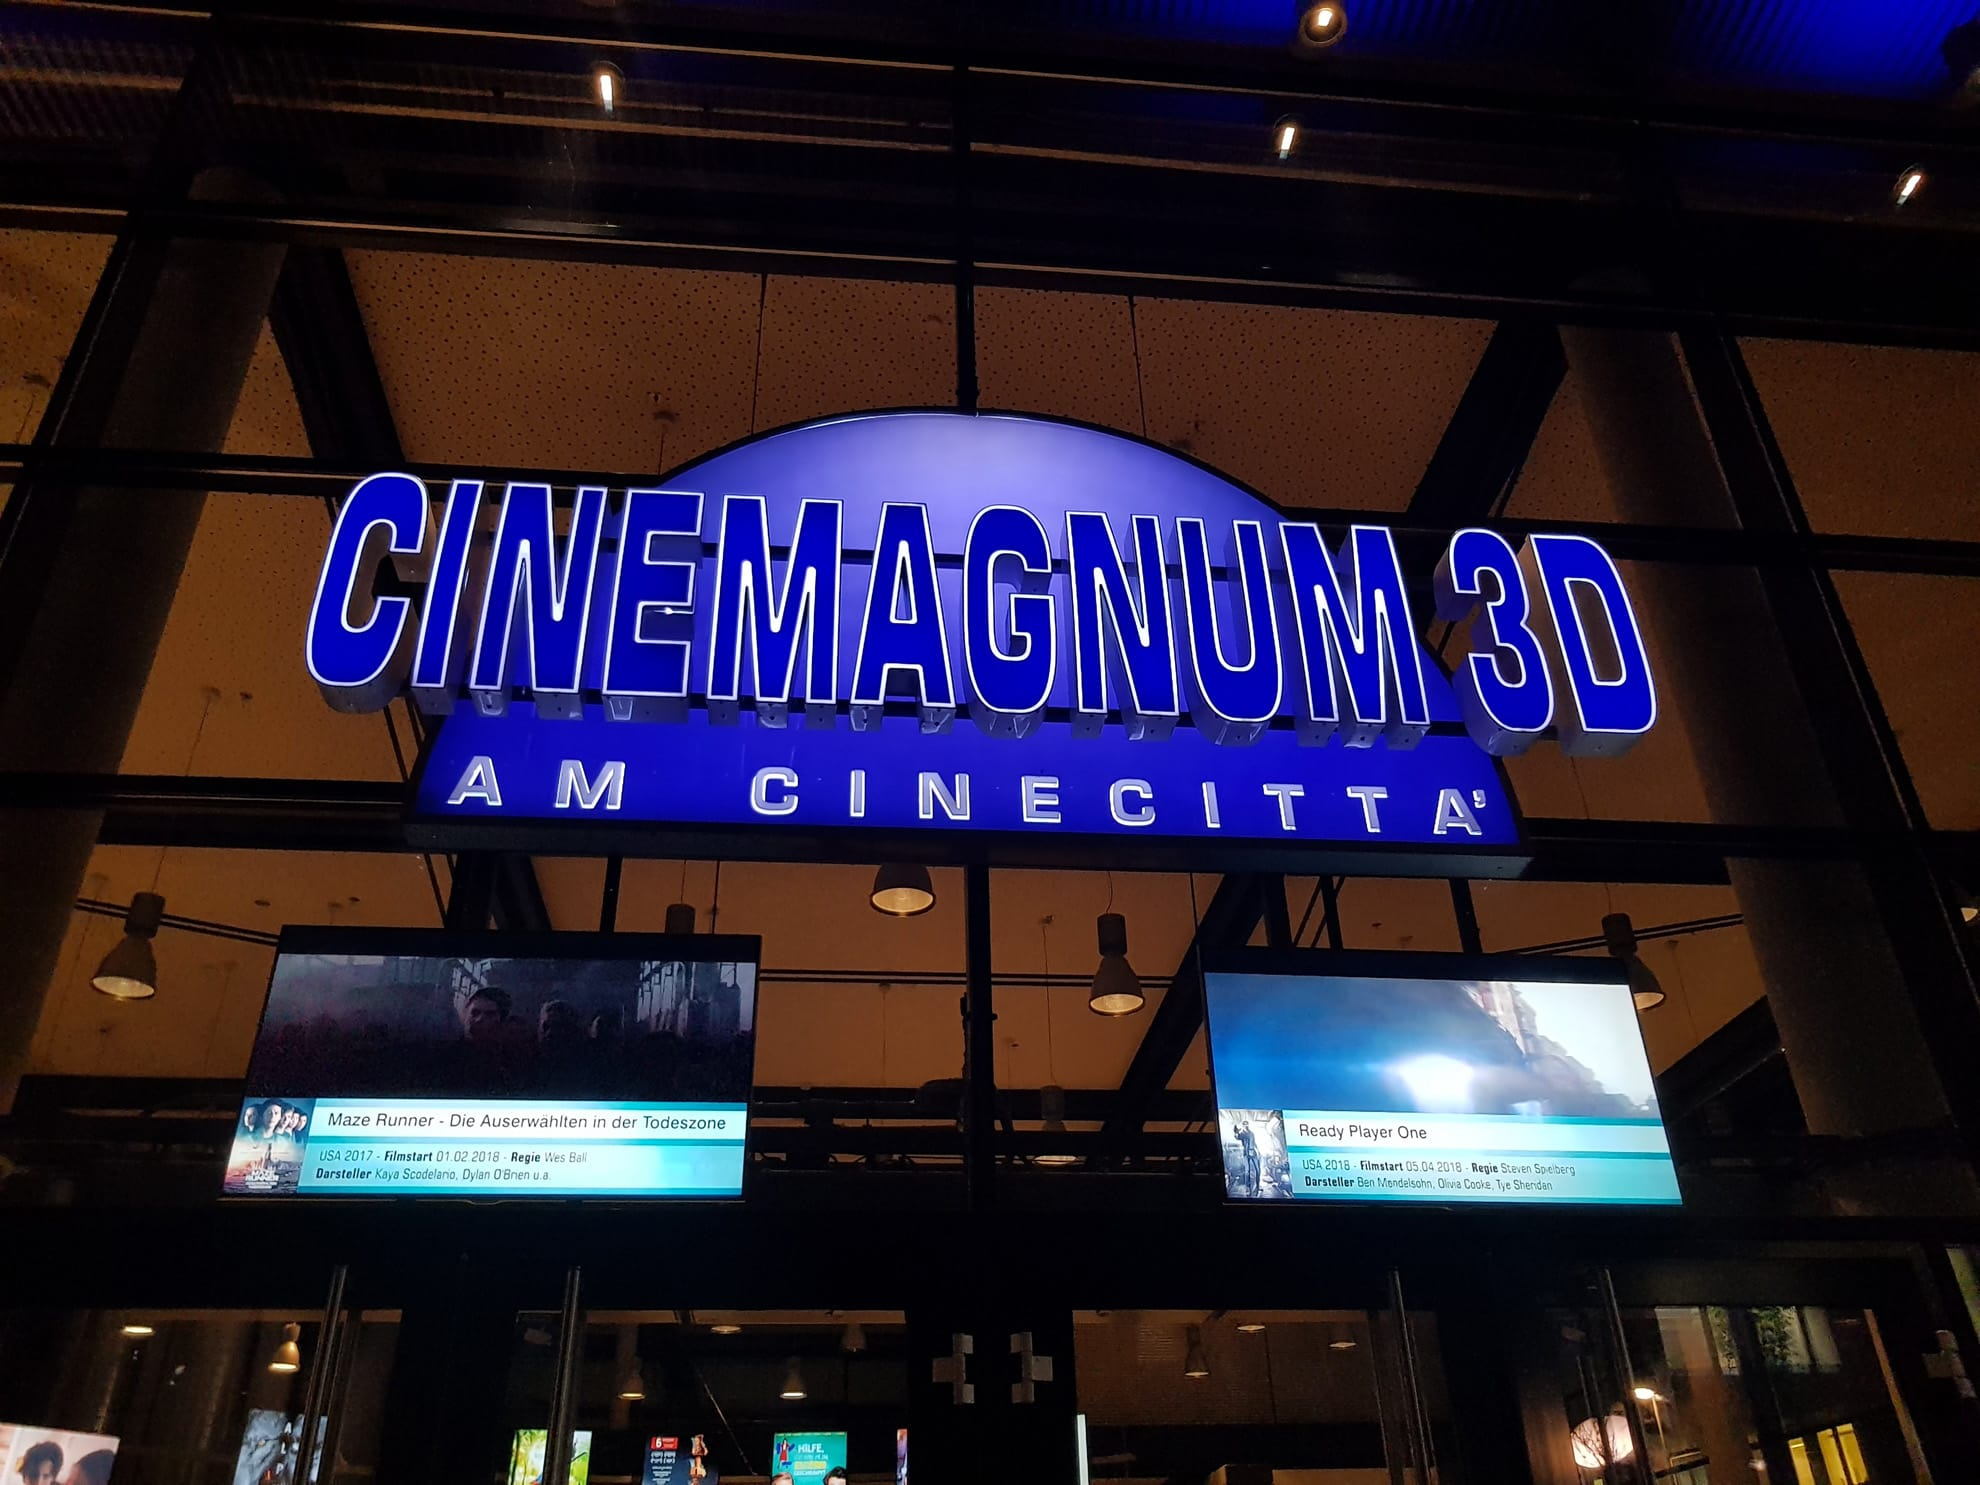 Cinemagnum Entrance at the Cinecittà in Nuremberg, Germany